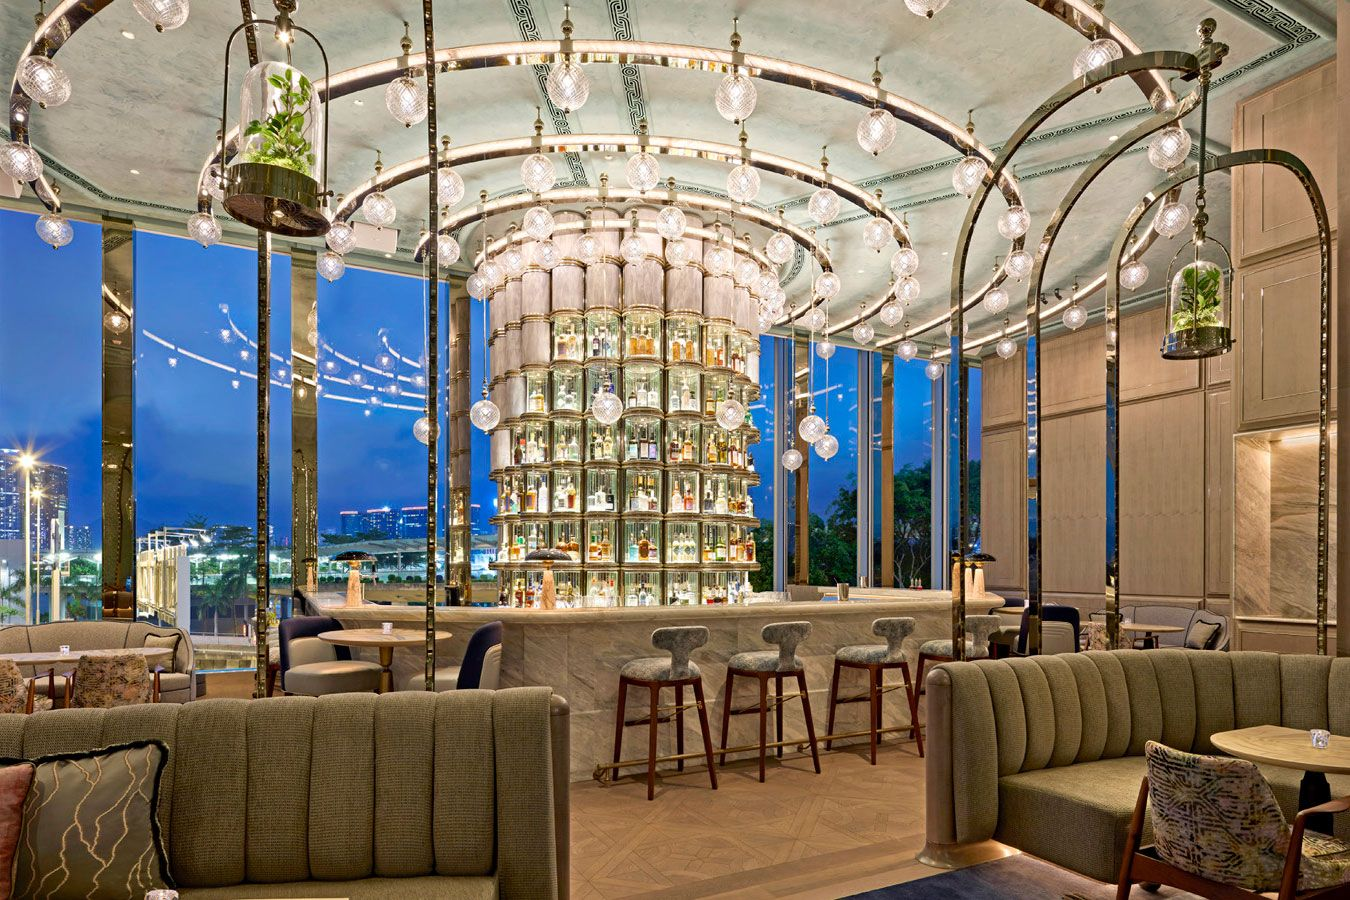 Argo At Four Seasons Hong Kong Is One Of 2021's Most Ambitious Bar Openings